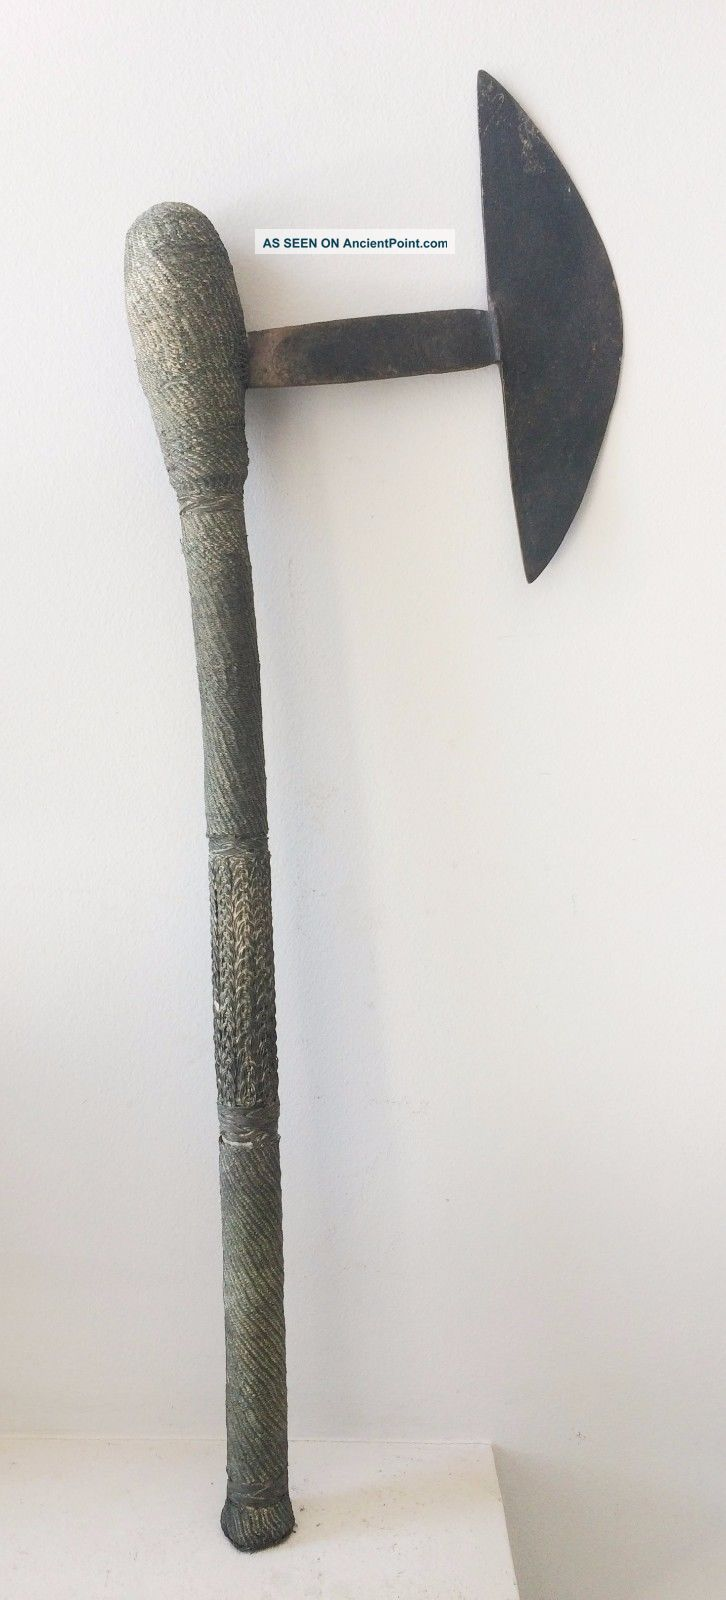 Big Shona Wired Axe From Mozambique - African Ethnic Tribal Zulu Spear Knife Other African Antiques photo